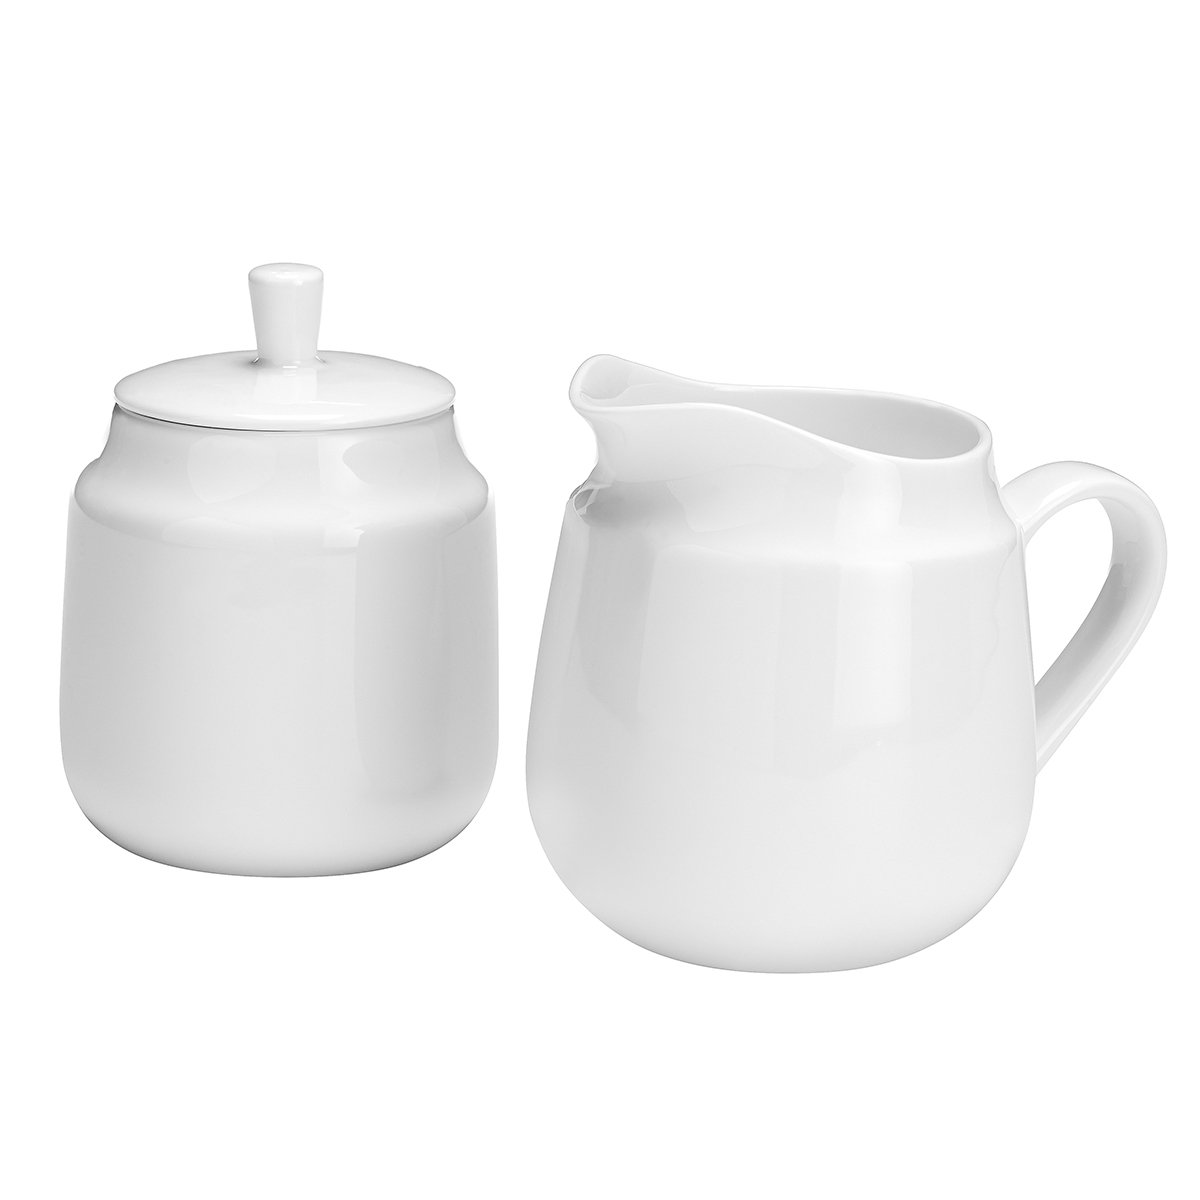 overandback 815982 Classic Bone Covered Sugar and Creamer Set, White